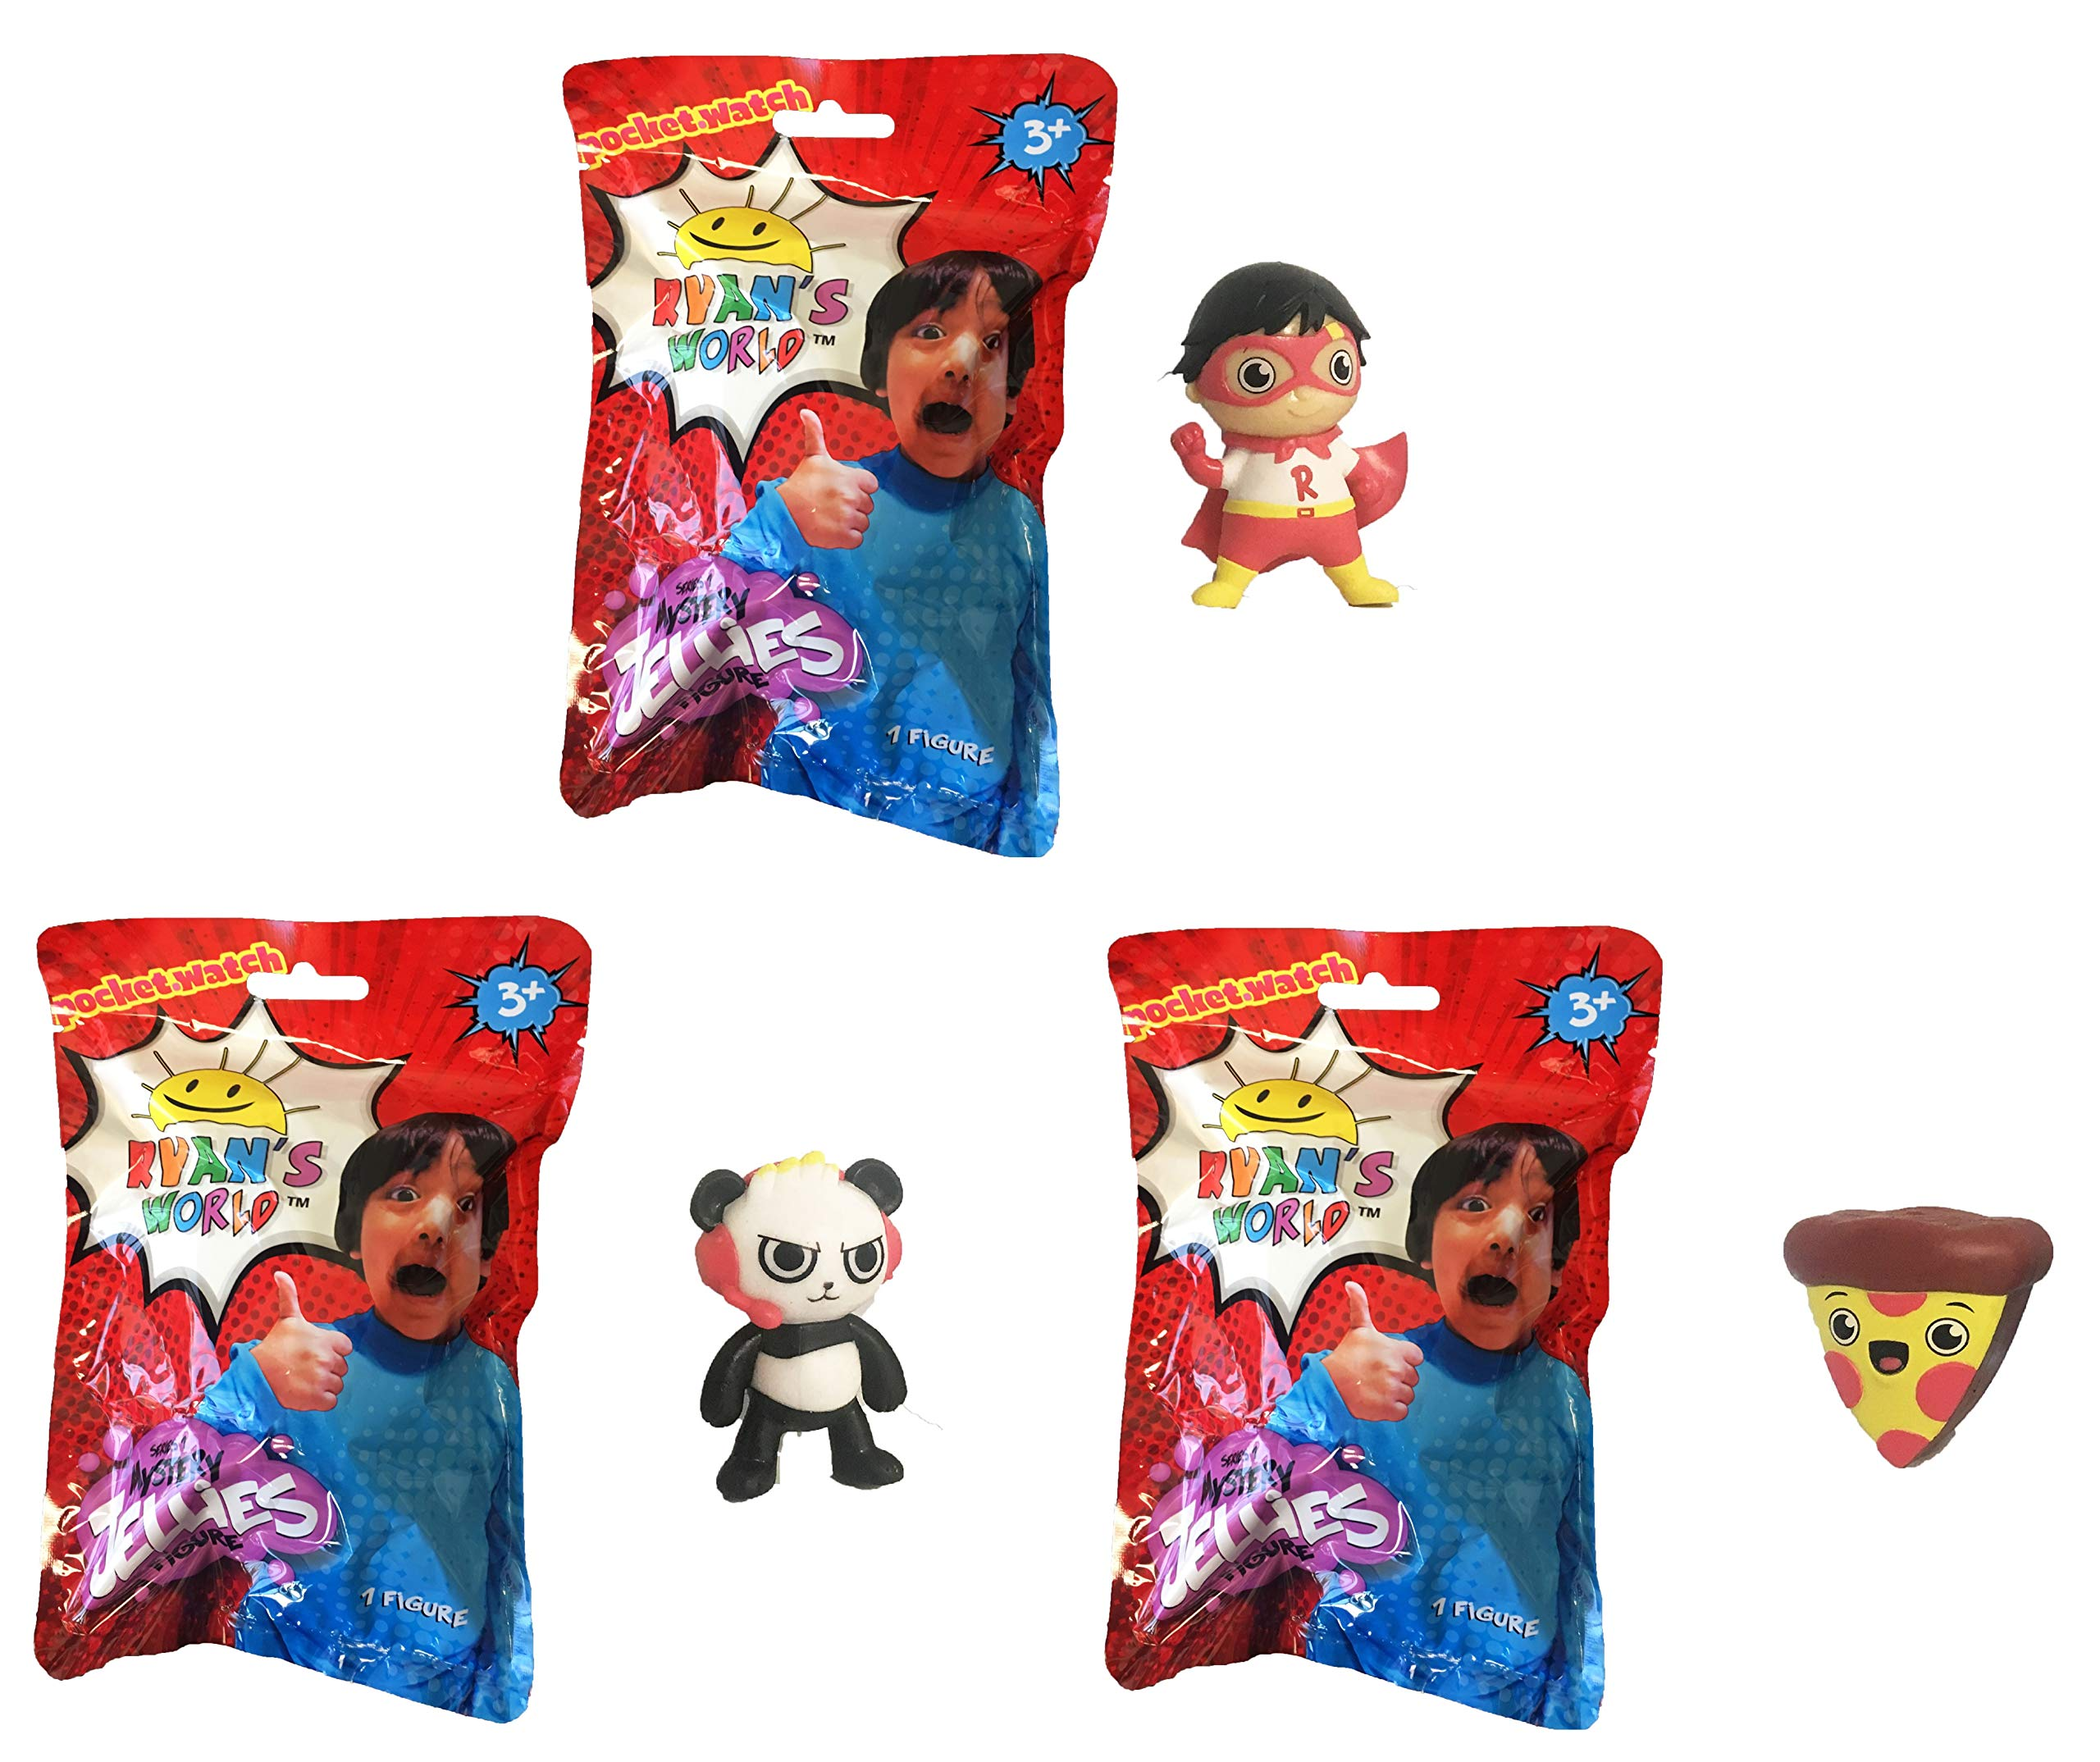 Ryan's World Surprise Jellies Squishy Toy Lot of 6 - Includes 6 Random Characters by Ryan's Toy Review by Ryan's World (Image #4)